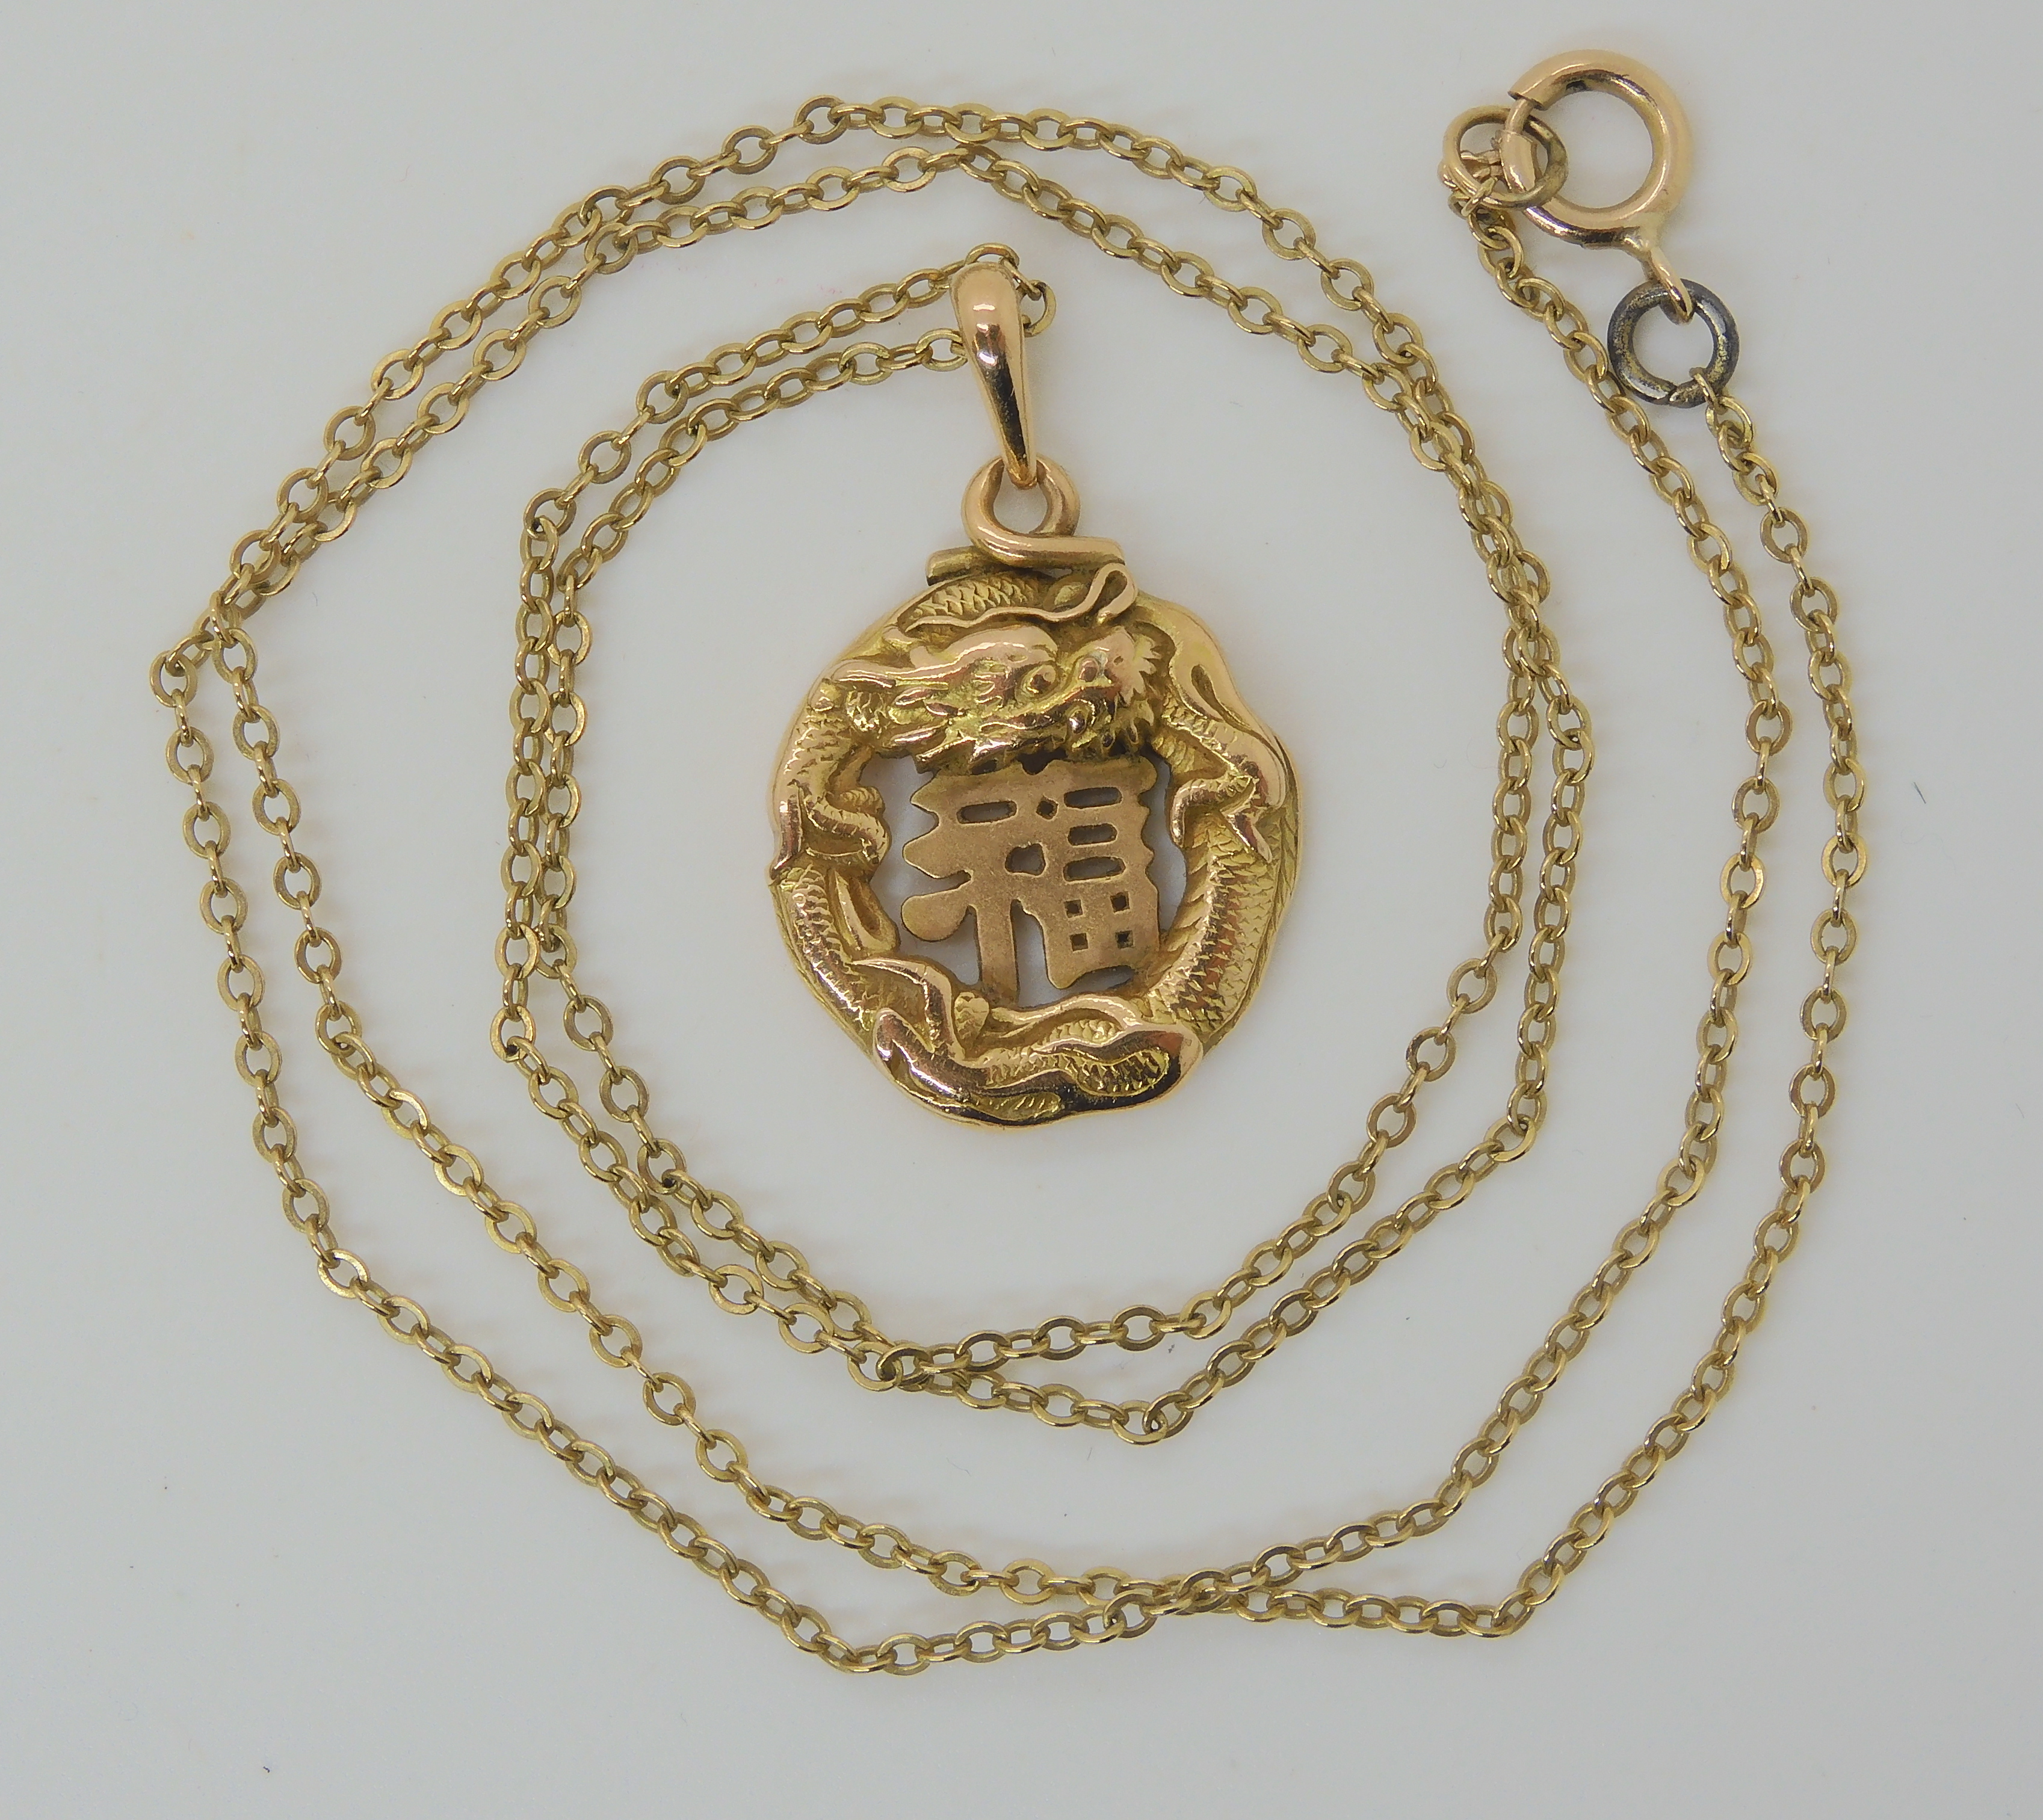 A CHINESE 16K GOLD DRAGON PENDANT the dragon coiled around a Chinese symbol, Chinese stamps to the